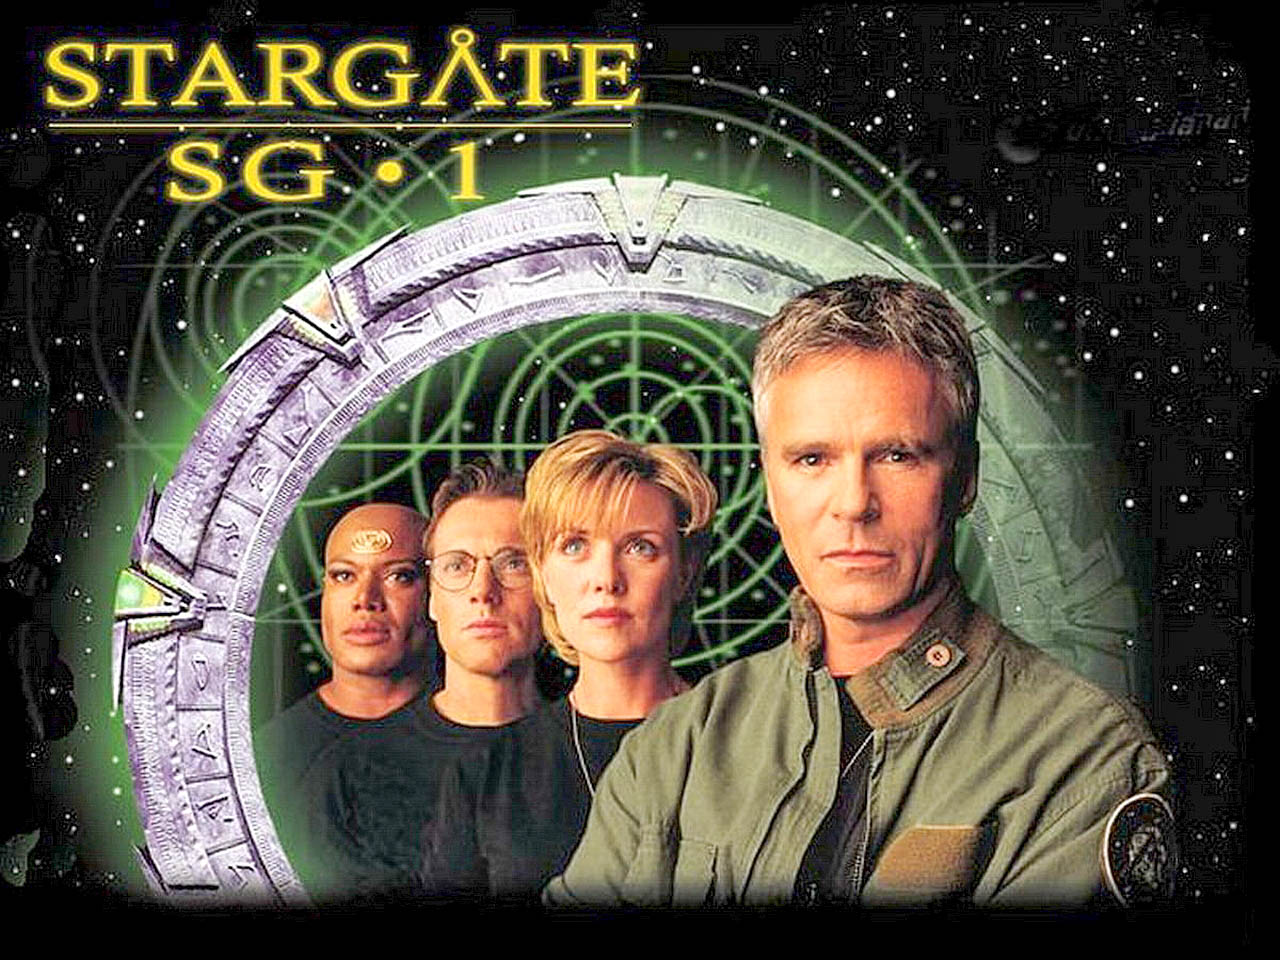 Stargate Iphone Wallpaper Stargate Sg 1 Tv Show High Quality Hd Wallpapers All Hd